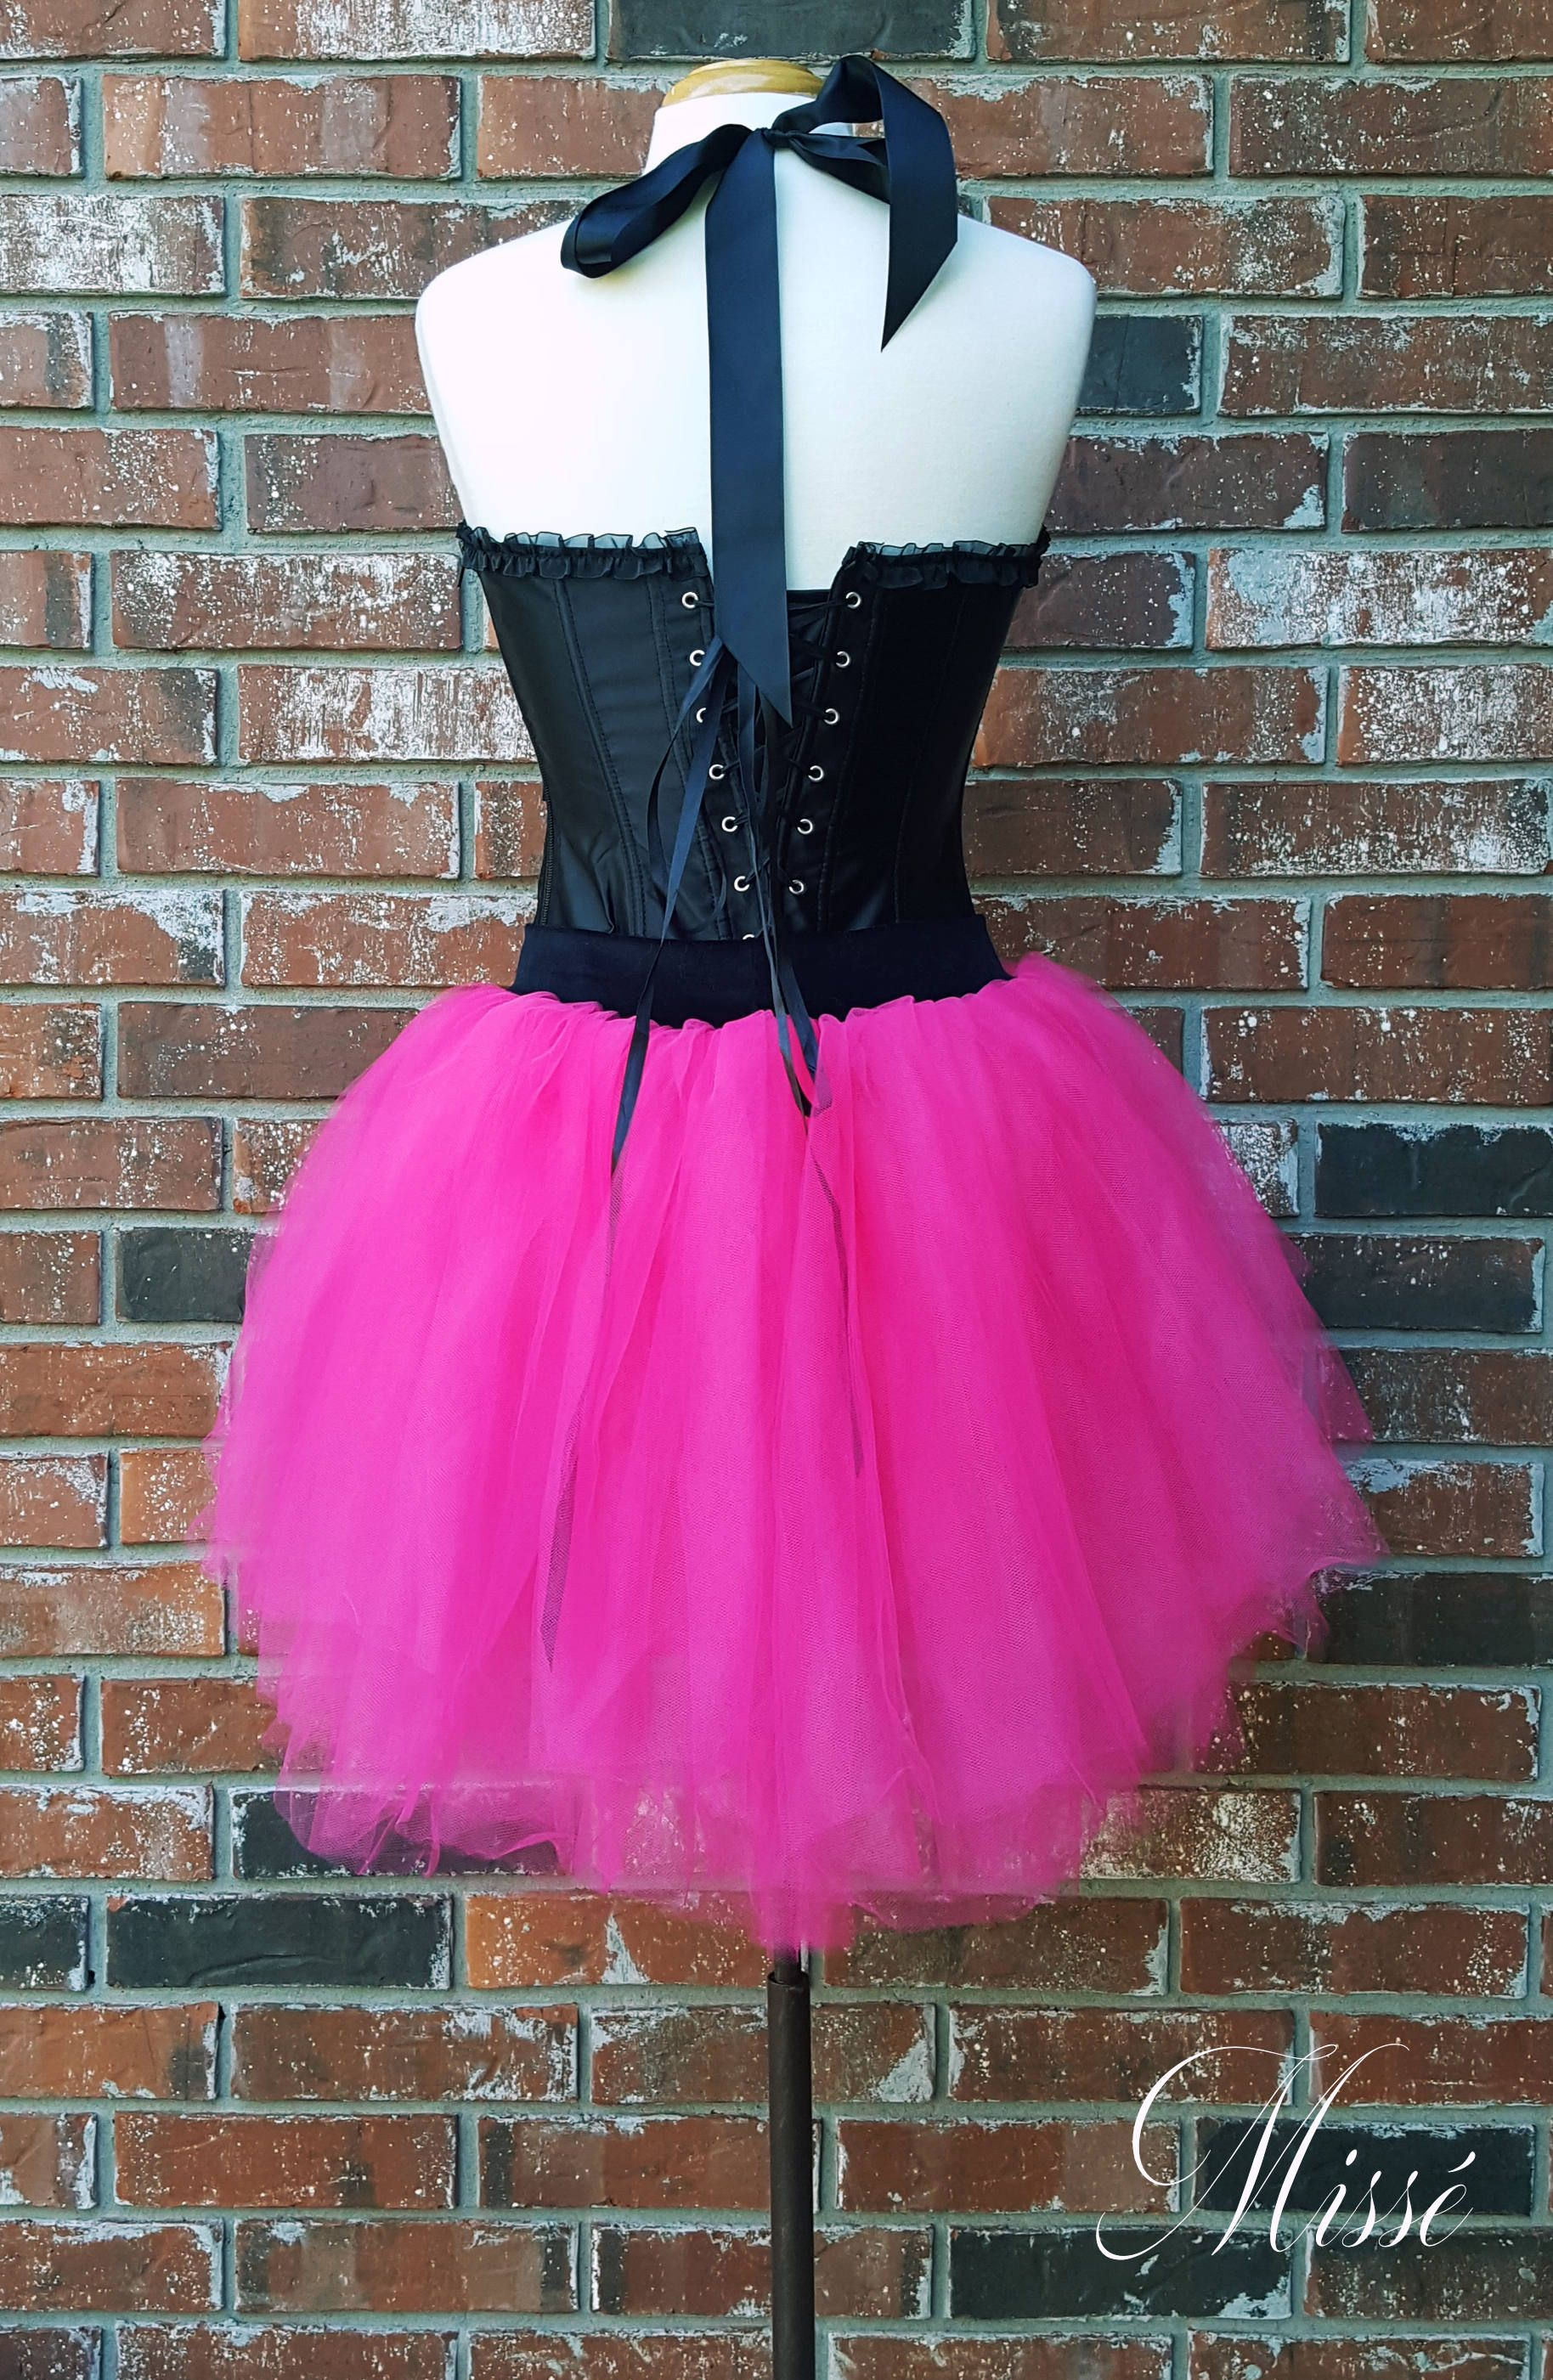 Eighties Prom Dresses 80s Prom Dress Prom Dresses For Sale Prom Party Dresses [ 1000 x 1000 Pixel ]